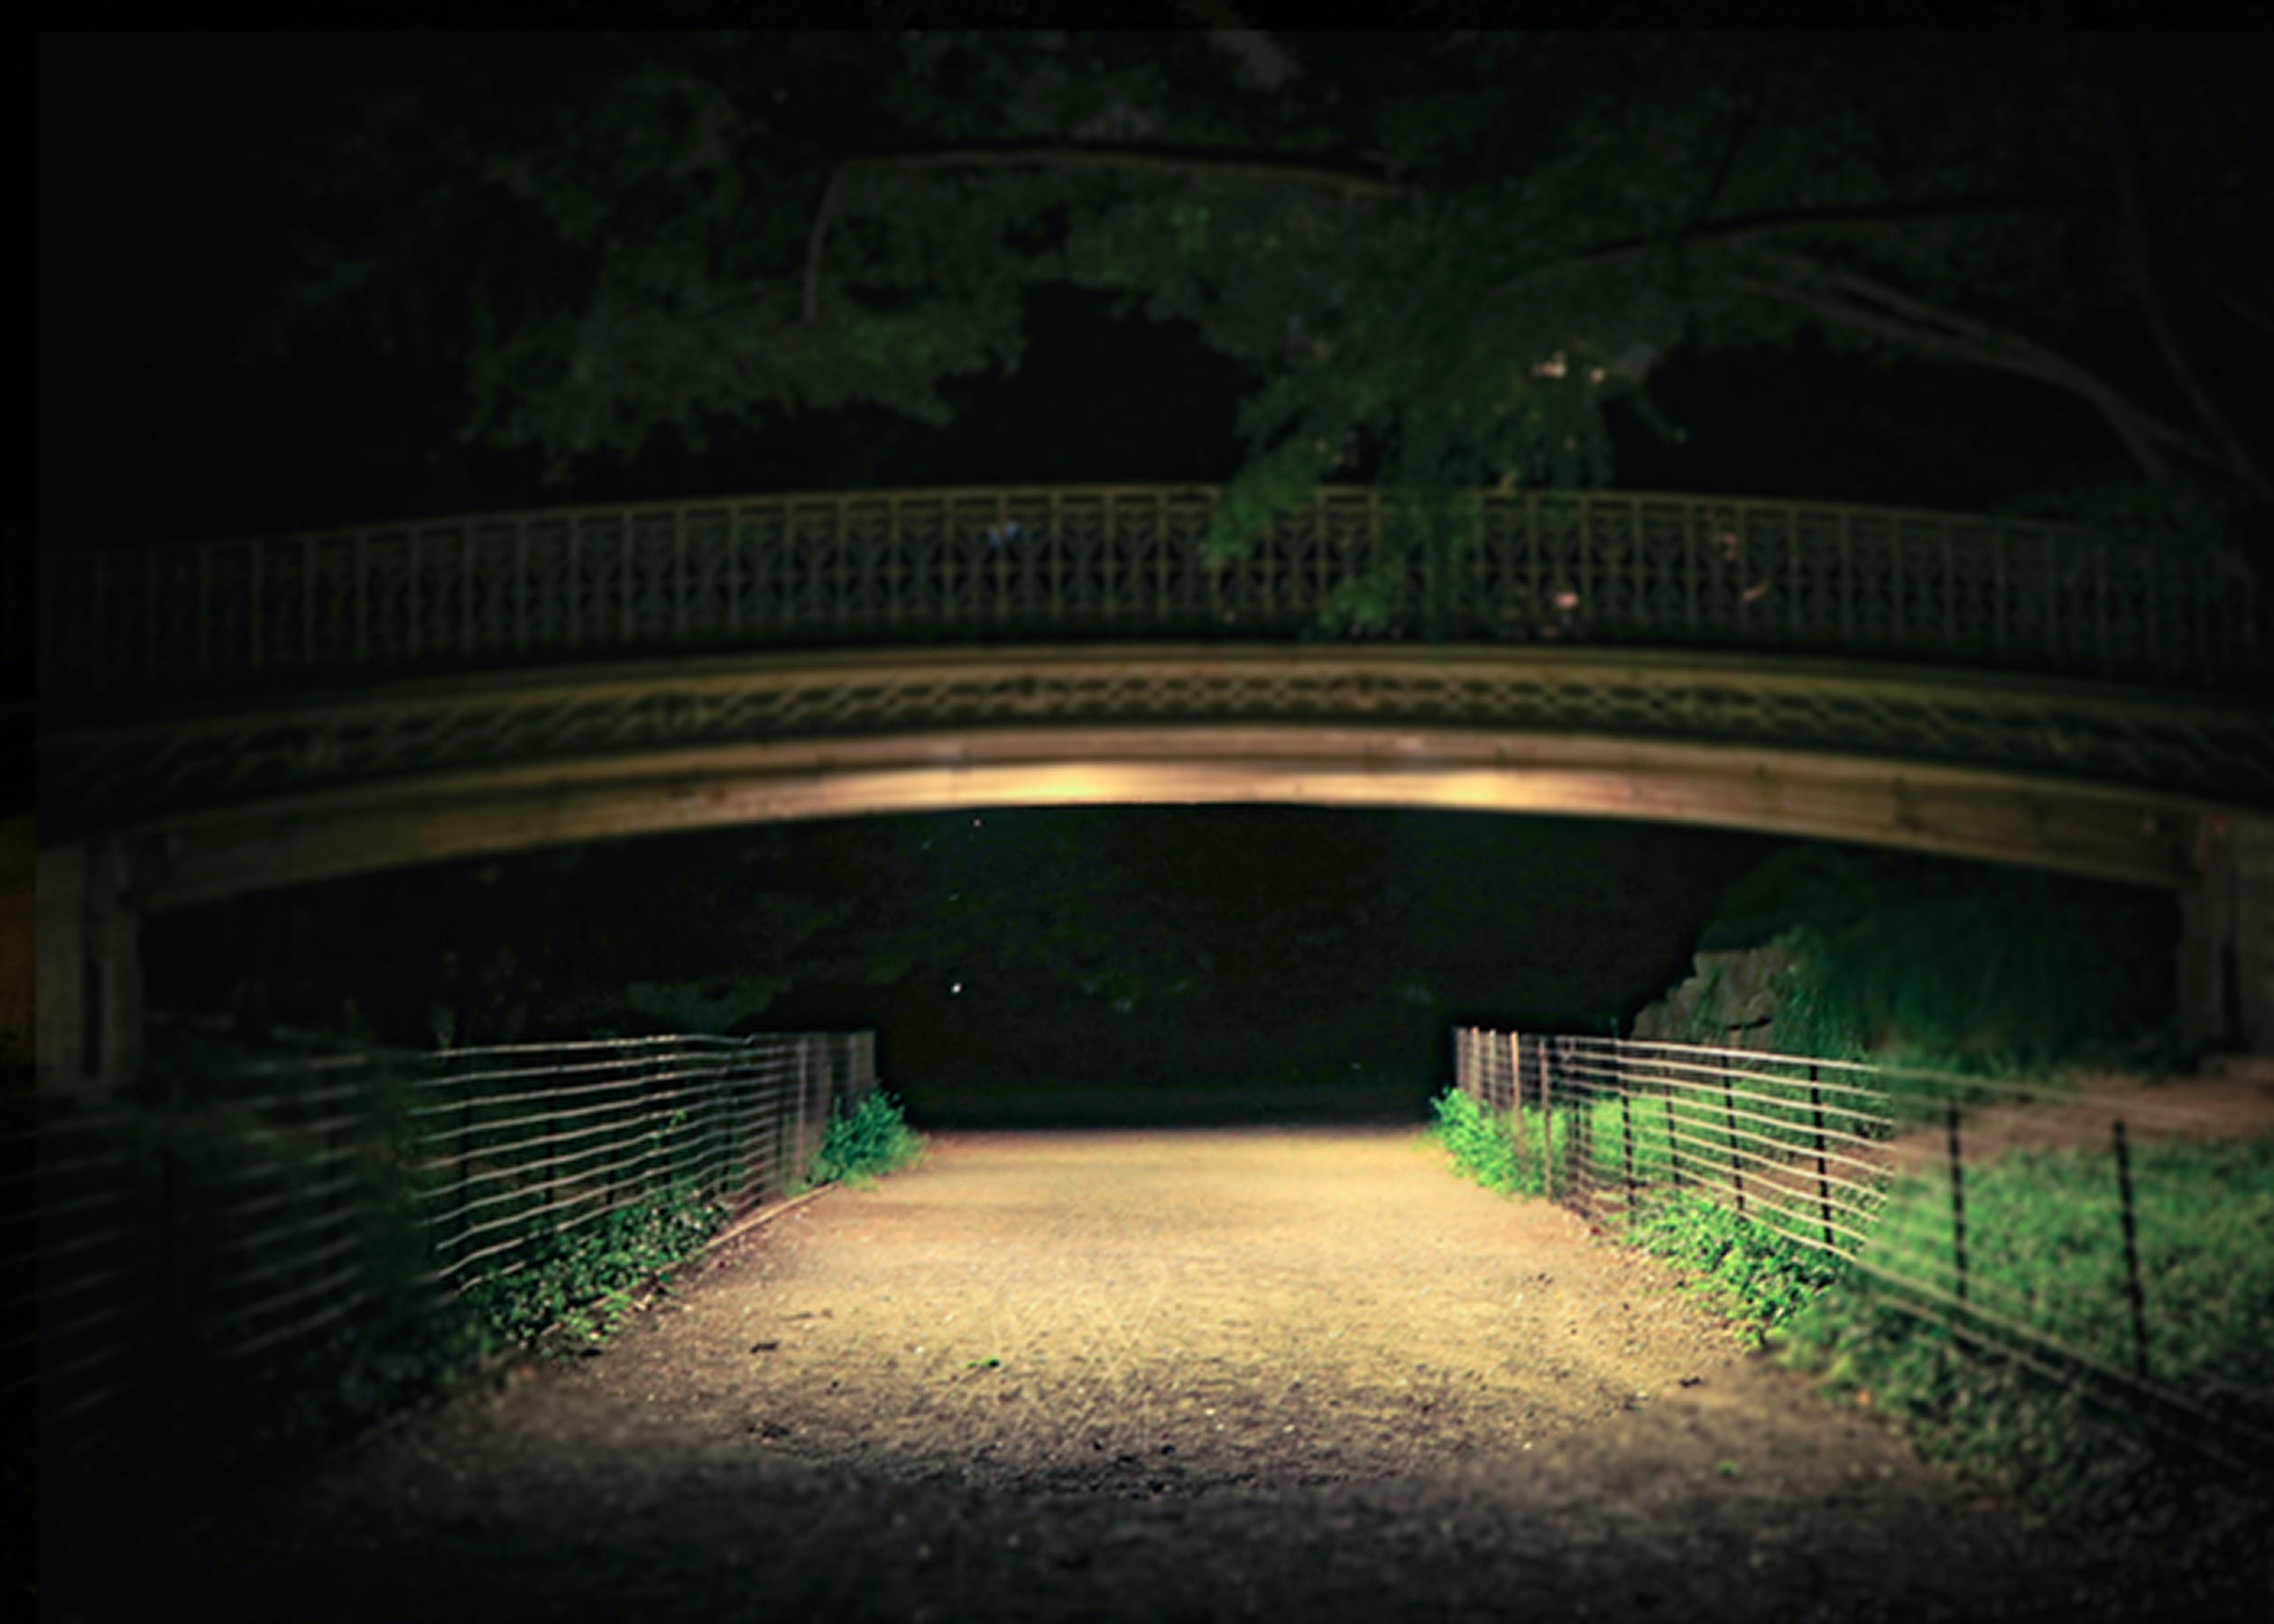 Free stock photo of #calm, #central park, #city parks, #enchanted